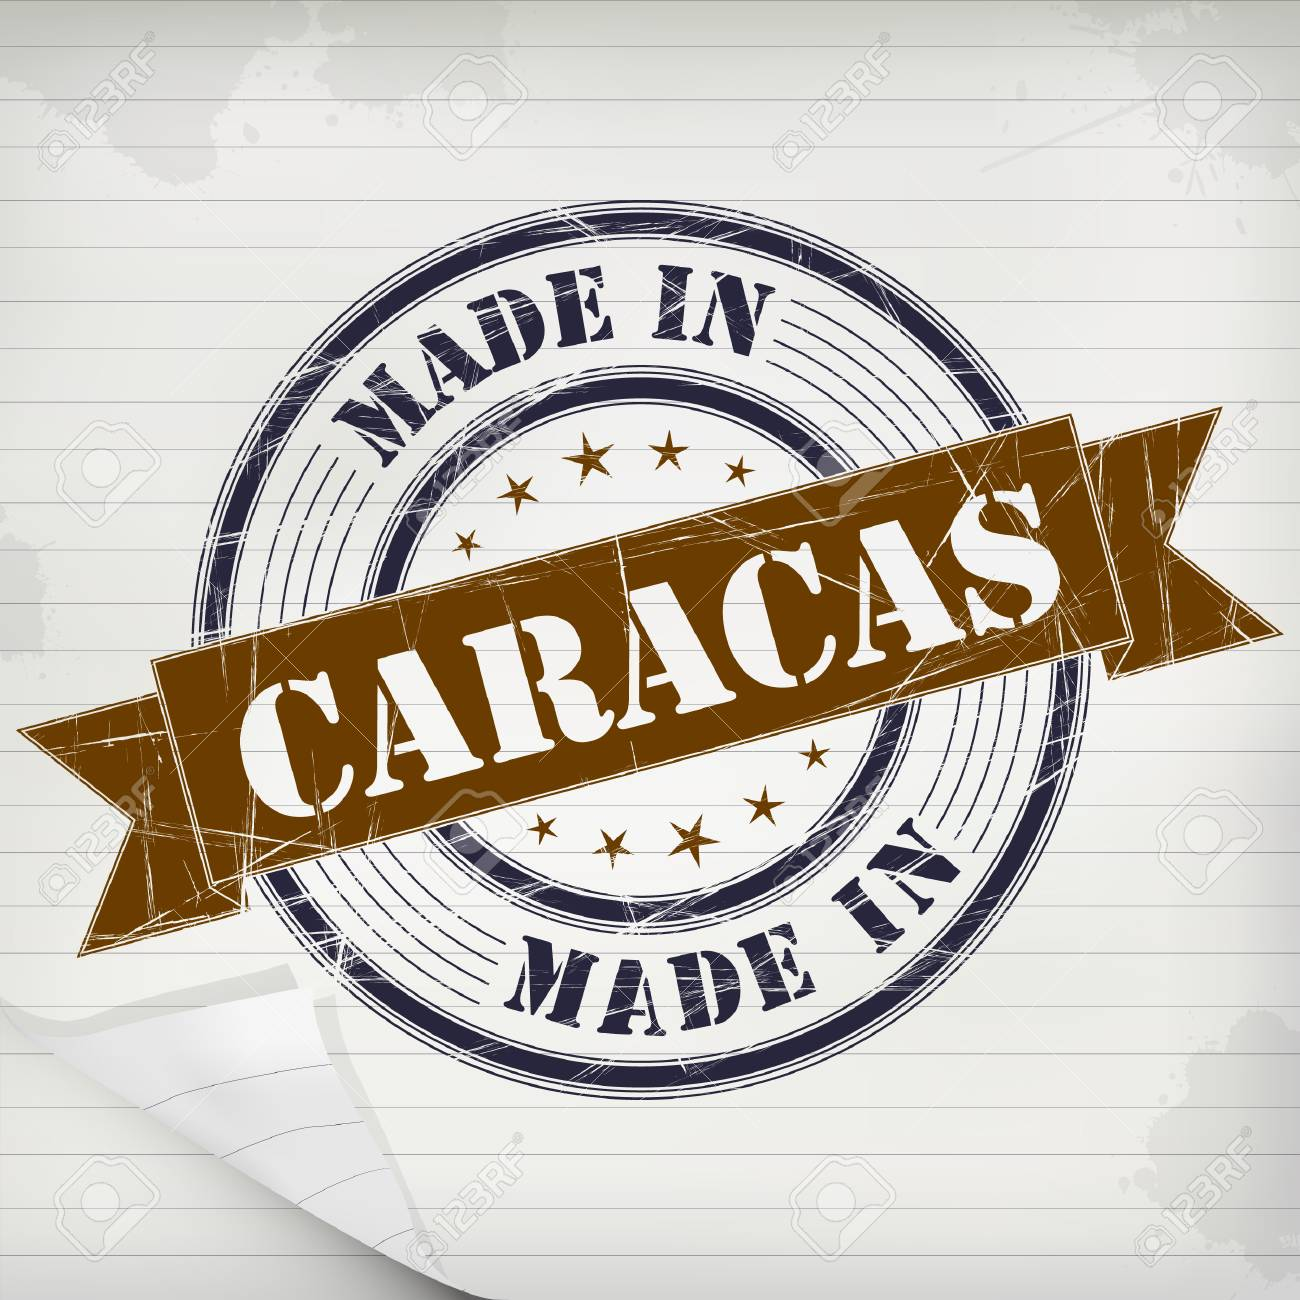 Made In Caracas Vector Rubber Stamp On Grunge Paper Stock